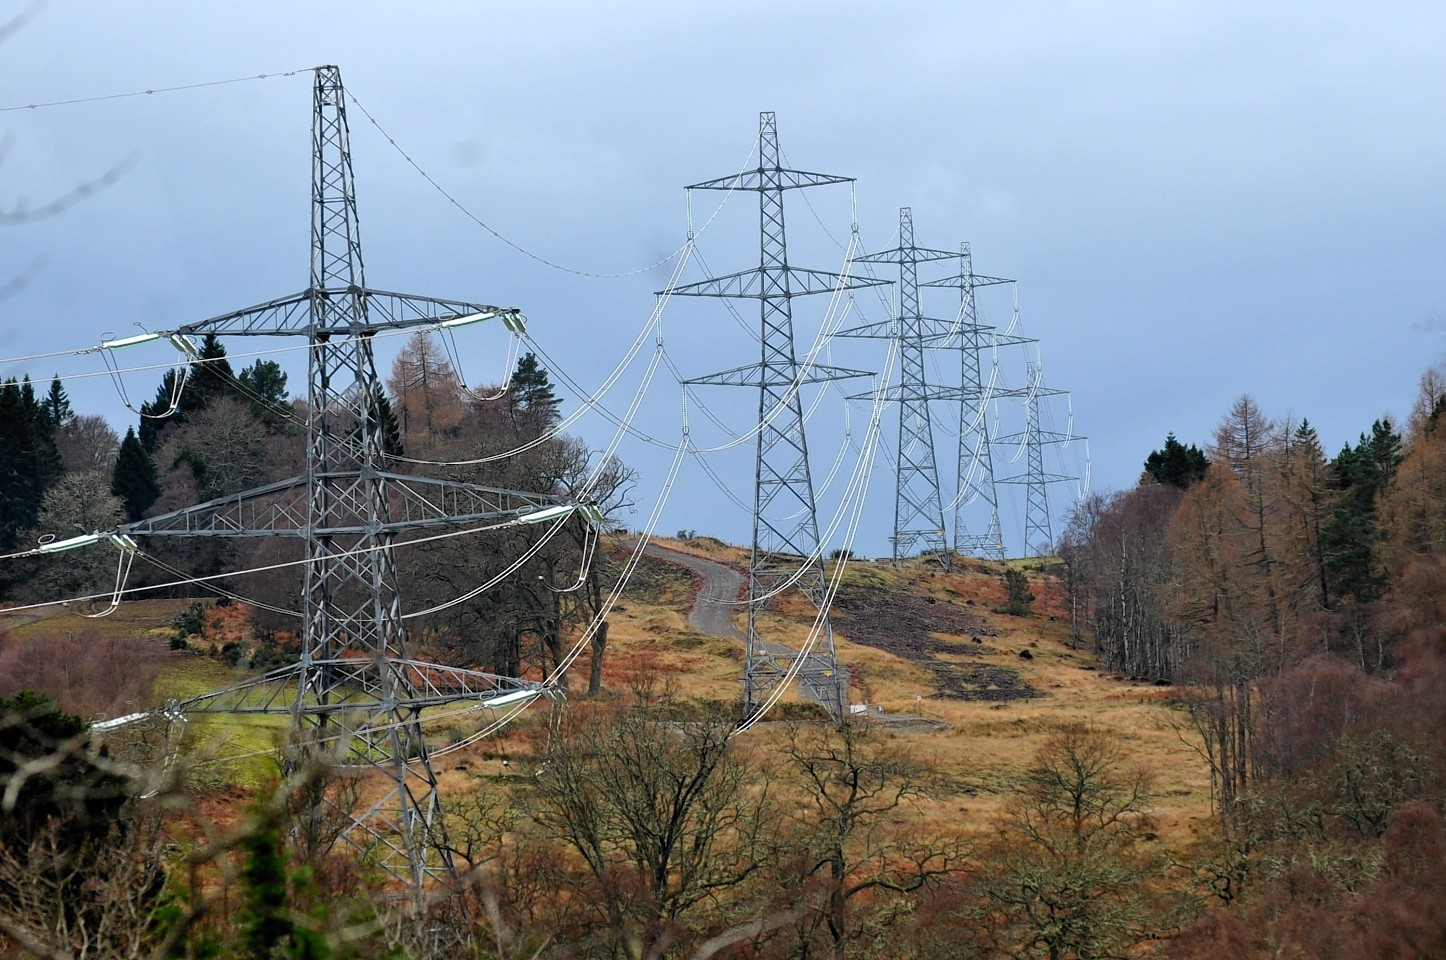 The 136-mile Beauly-Denny line was the last major power line to go operational in the north